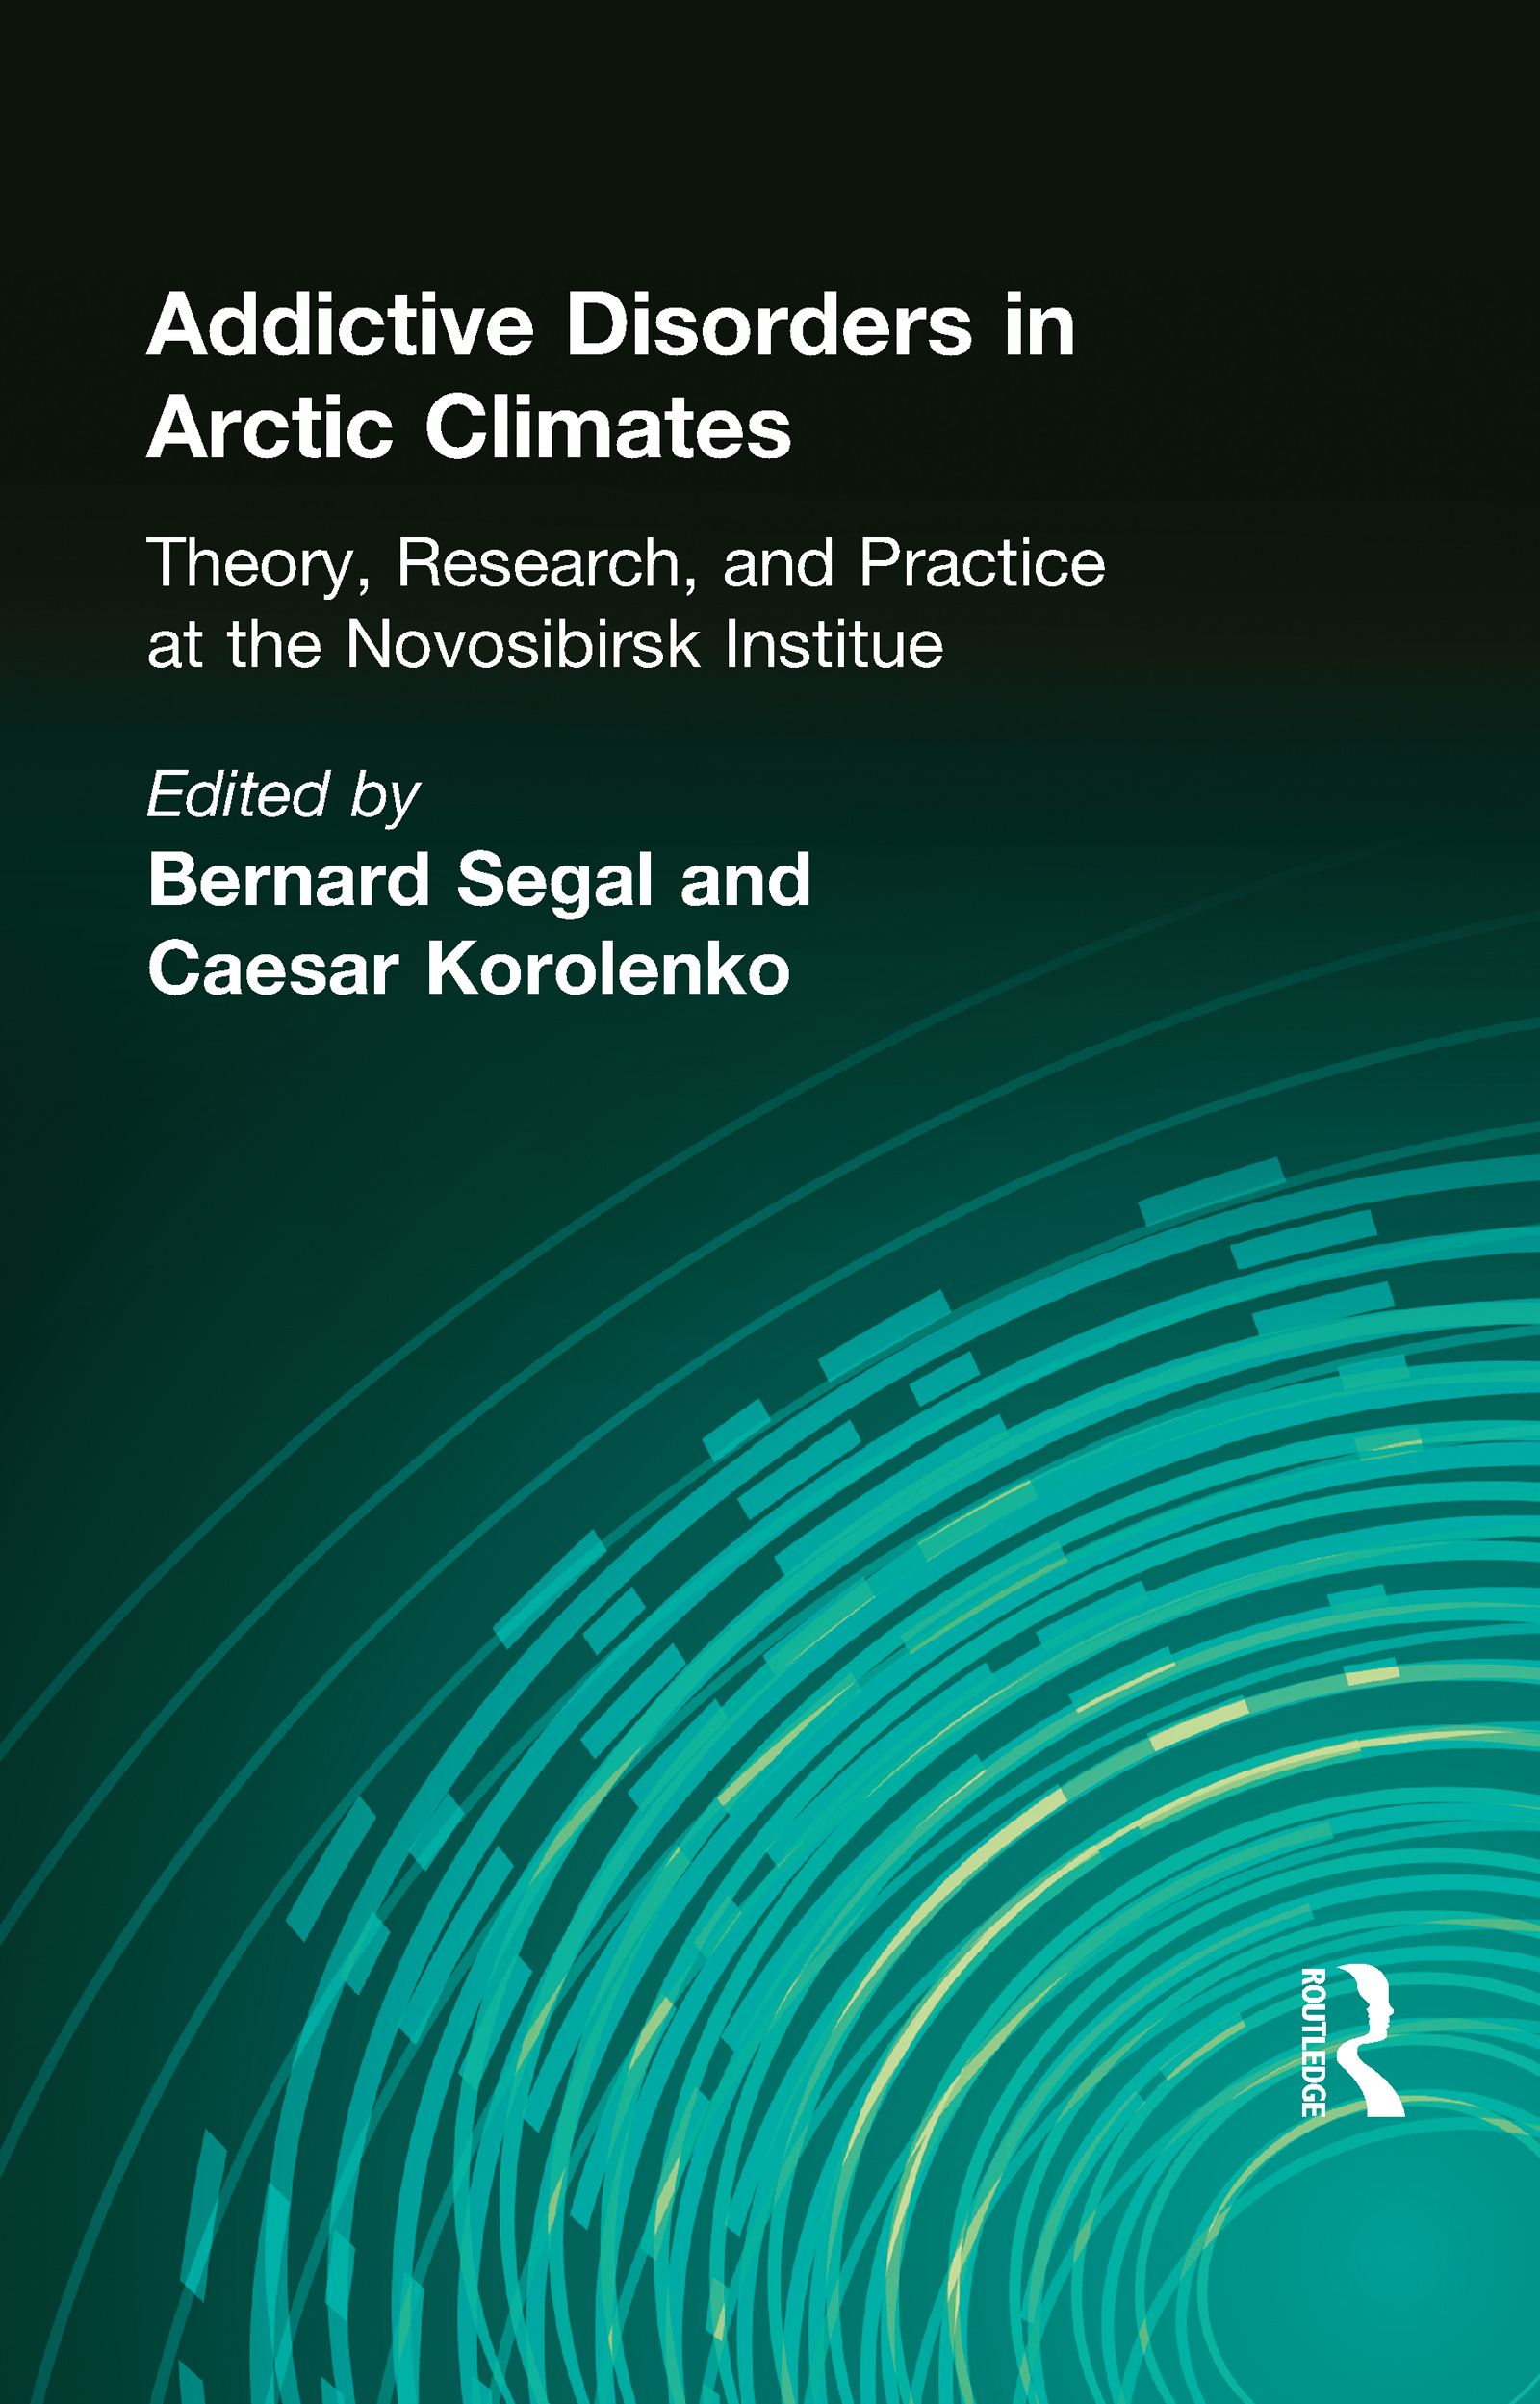 Addictive Disorders in Arctic Climates: Theory, Research, and Practice at the Novosibirsk Institute (Hardback) book cover